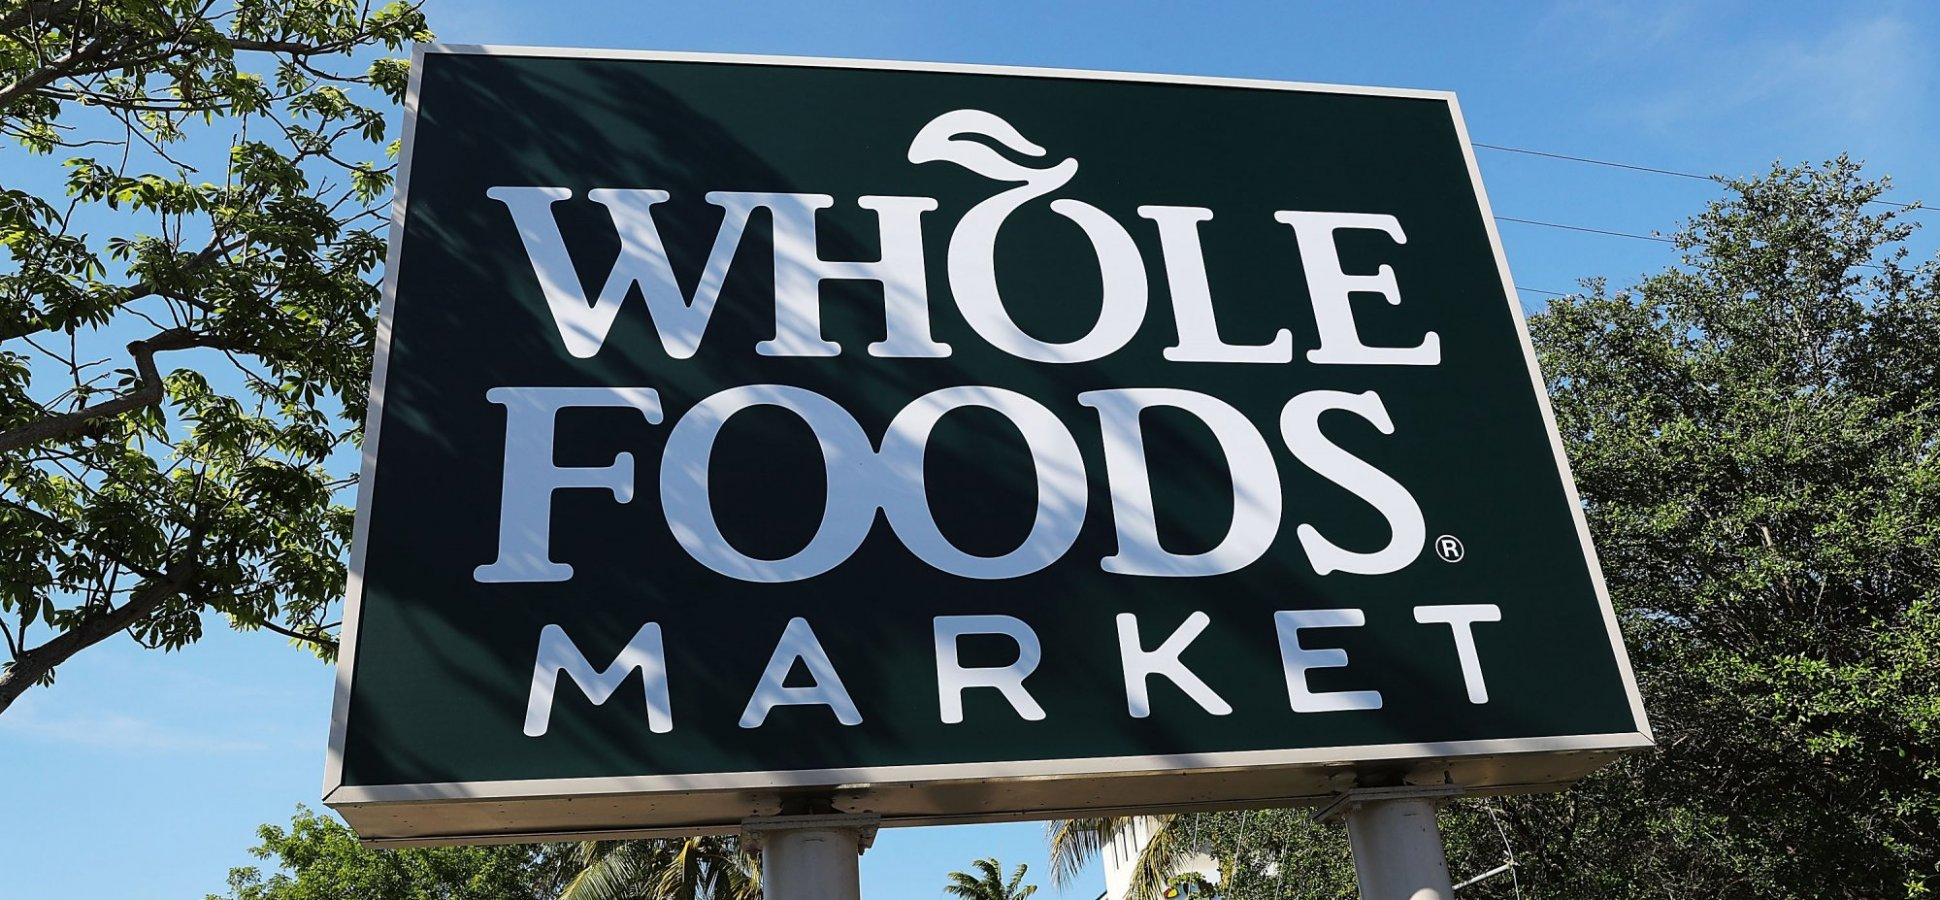 Whole Foods Just Announced a Surprising Change That Left an Employee 'In Shock' and Could Totally Alienate Their Most Loyal Customers